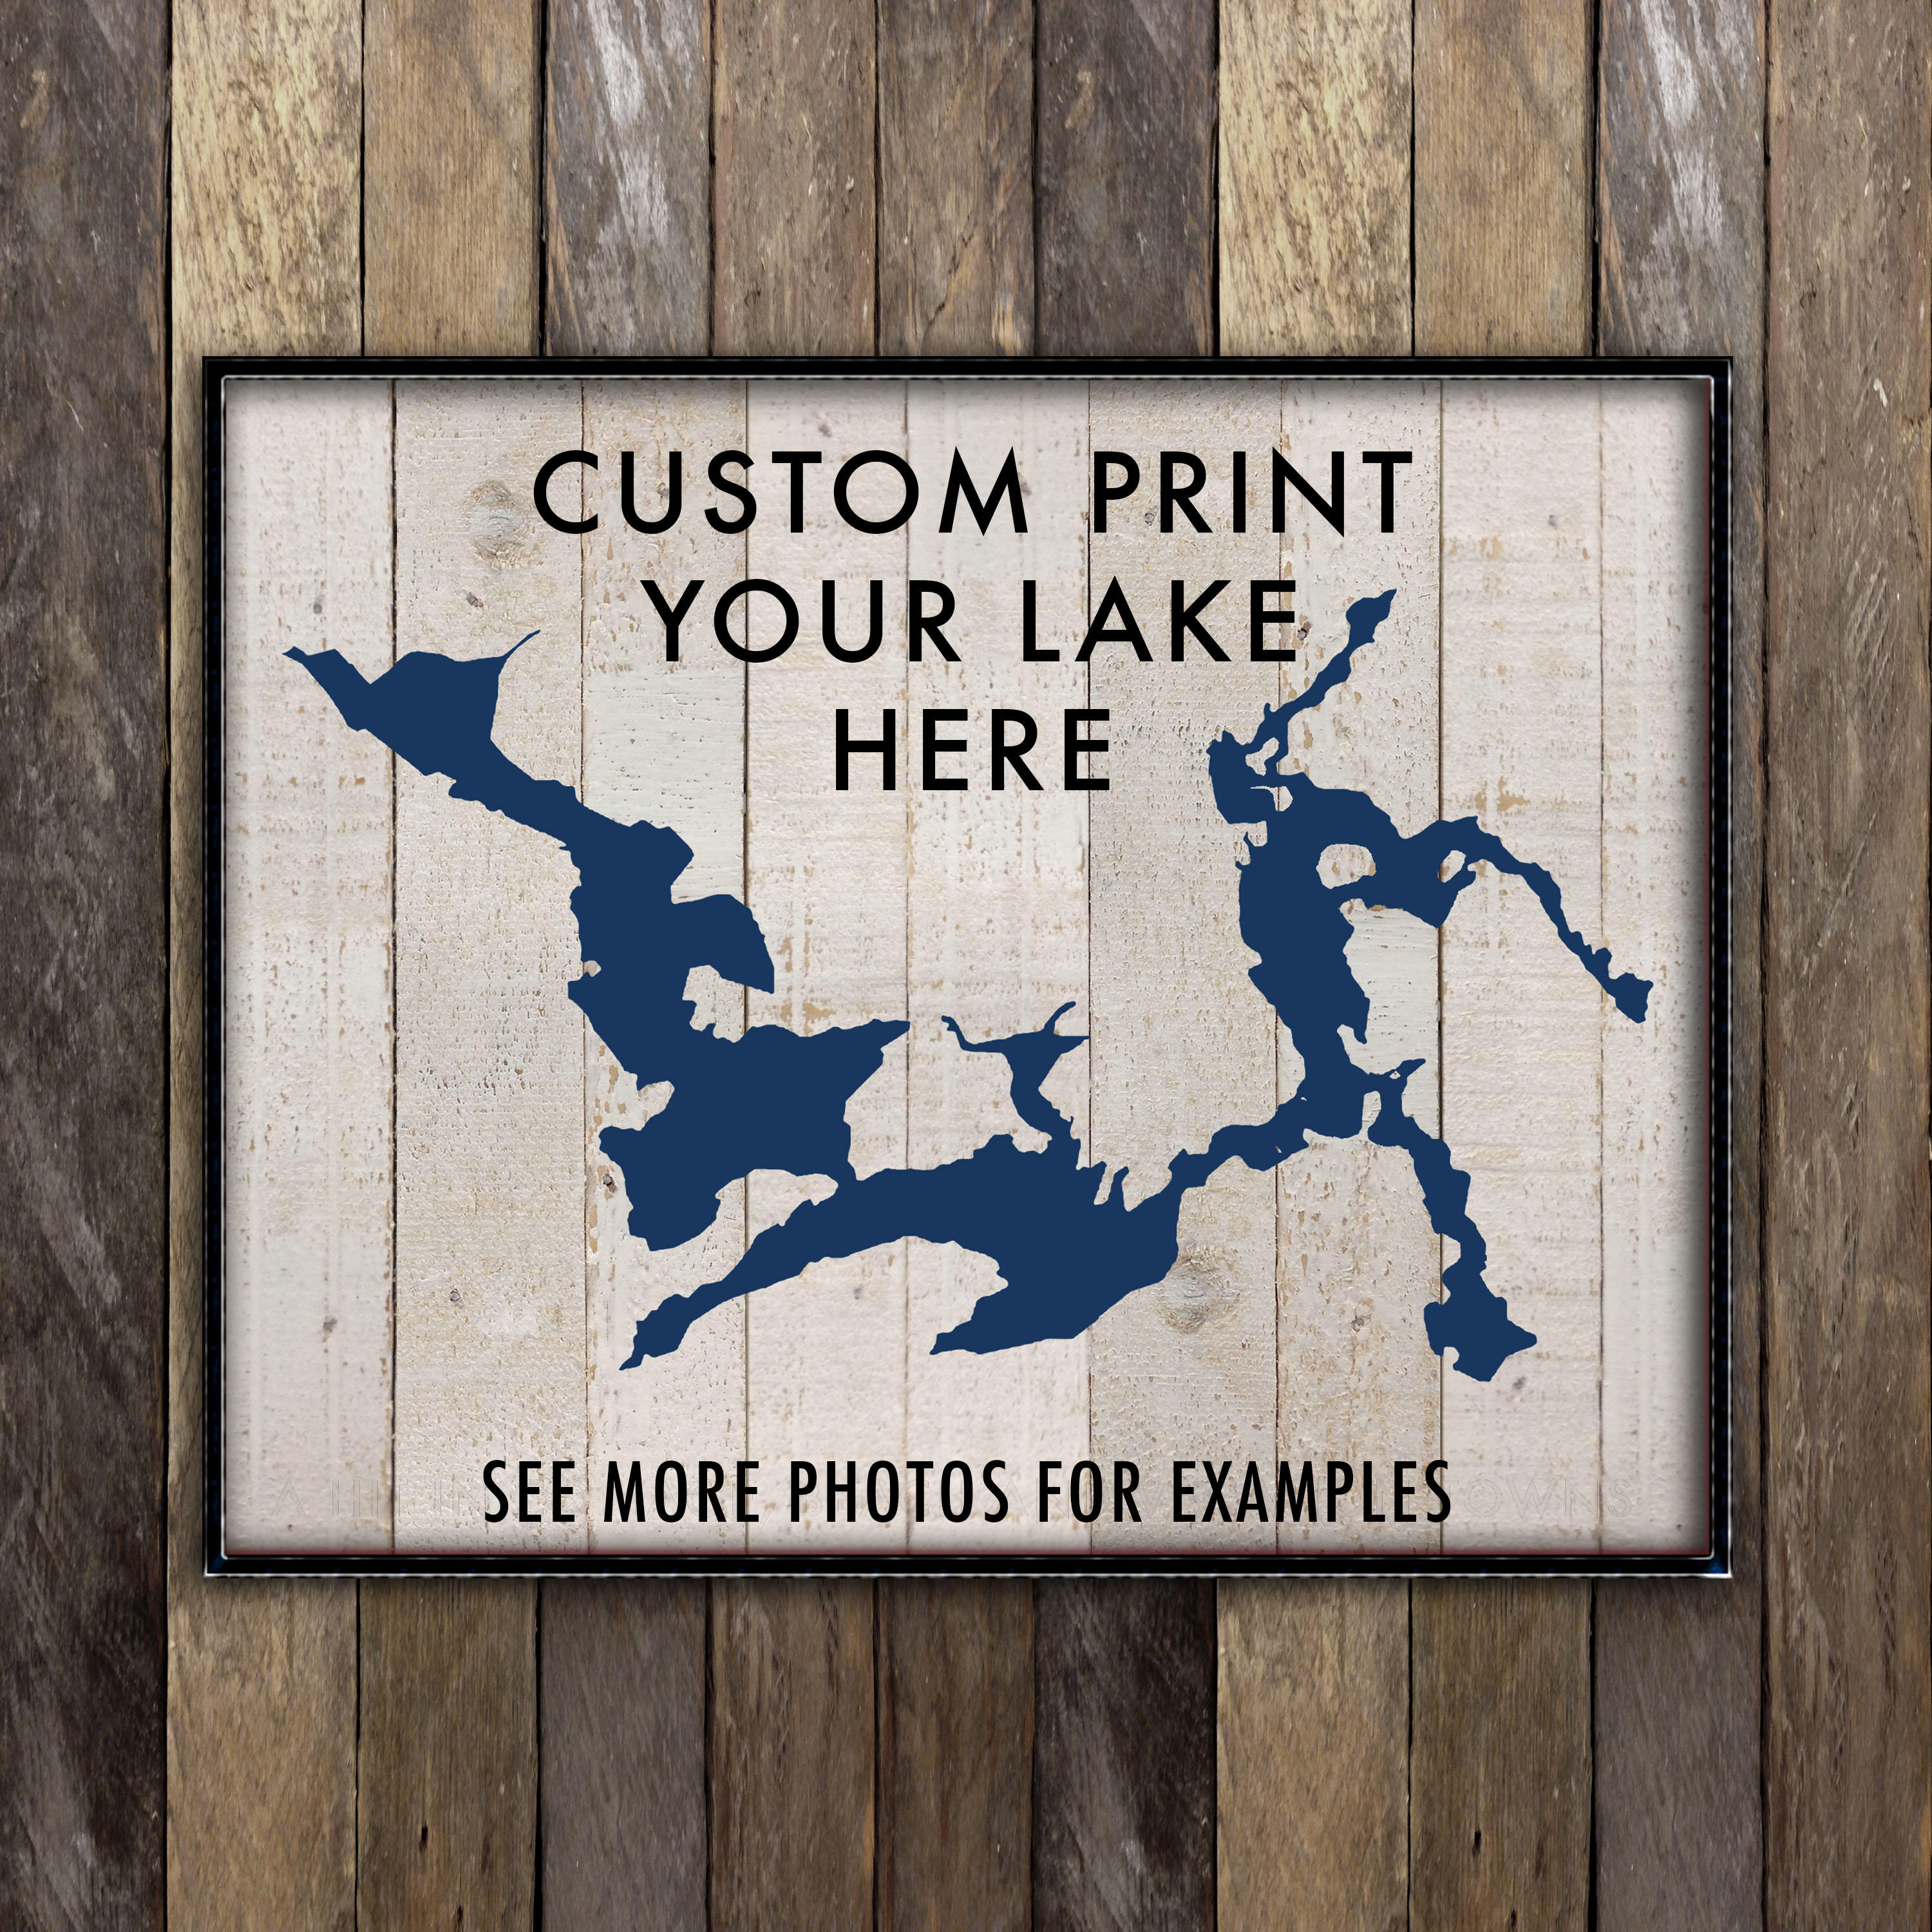 Personalized Signs For Home Decorating: Custom Lake House Sign Lake House Decor Lake Life Print